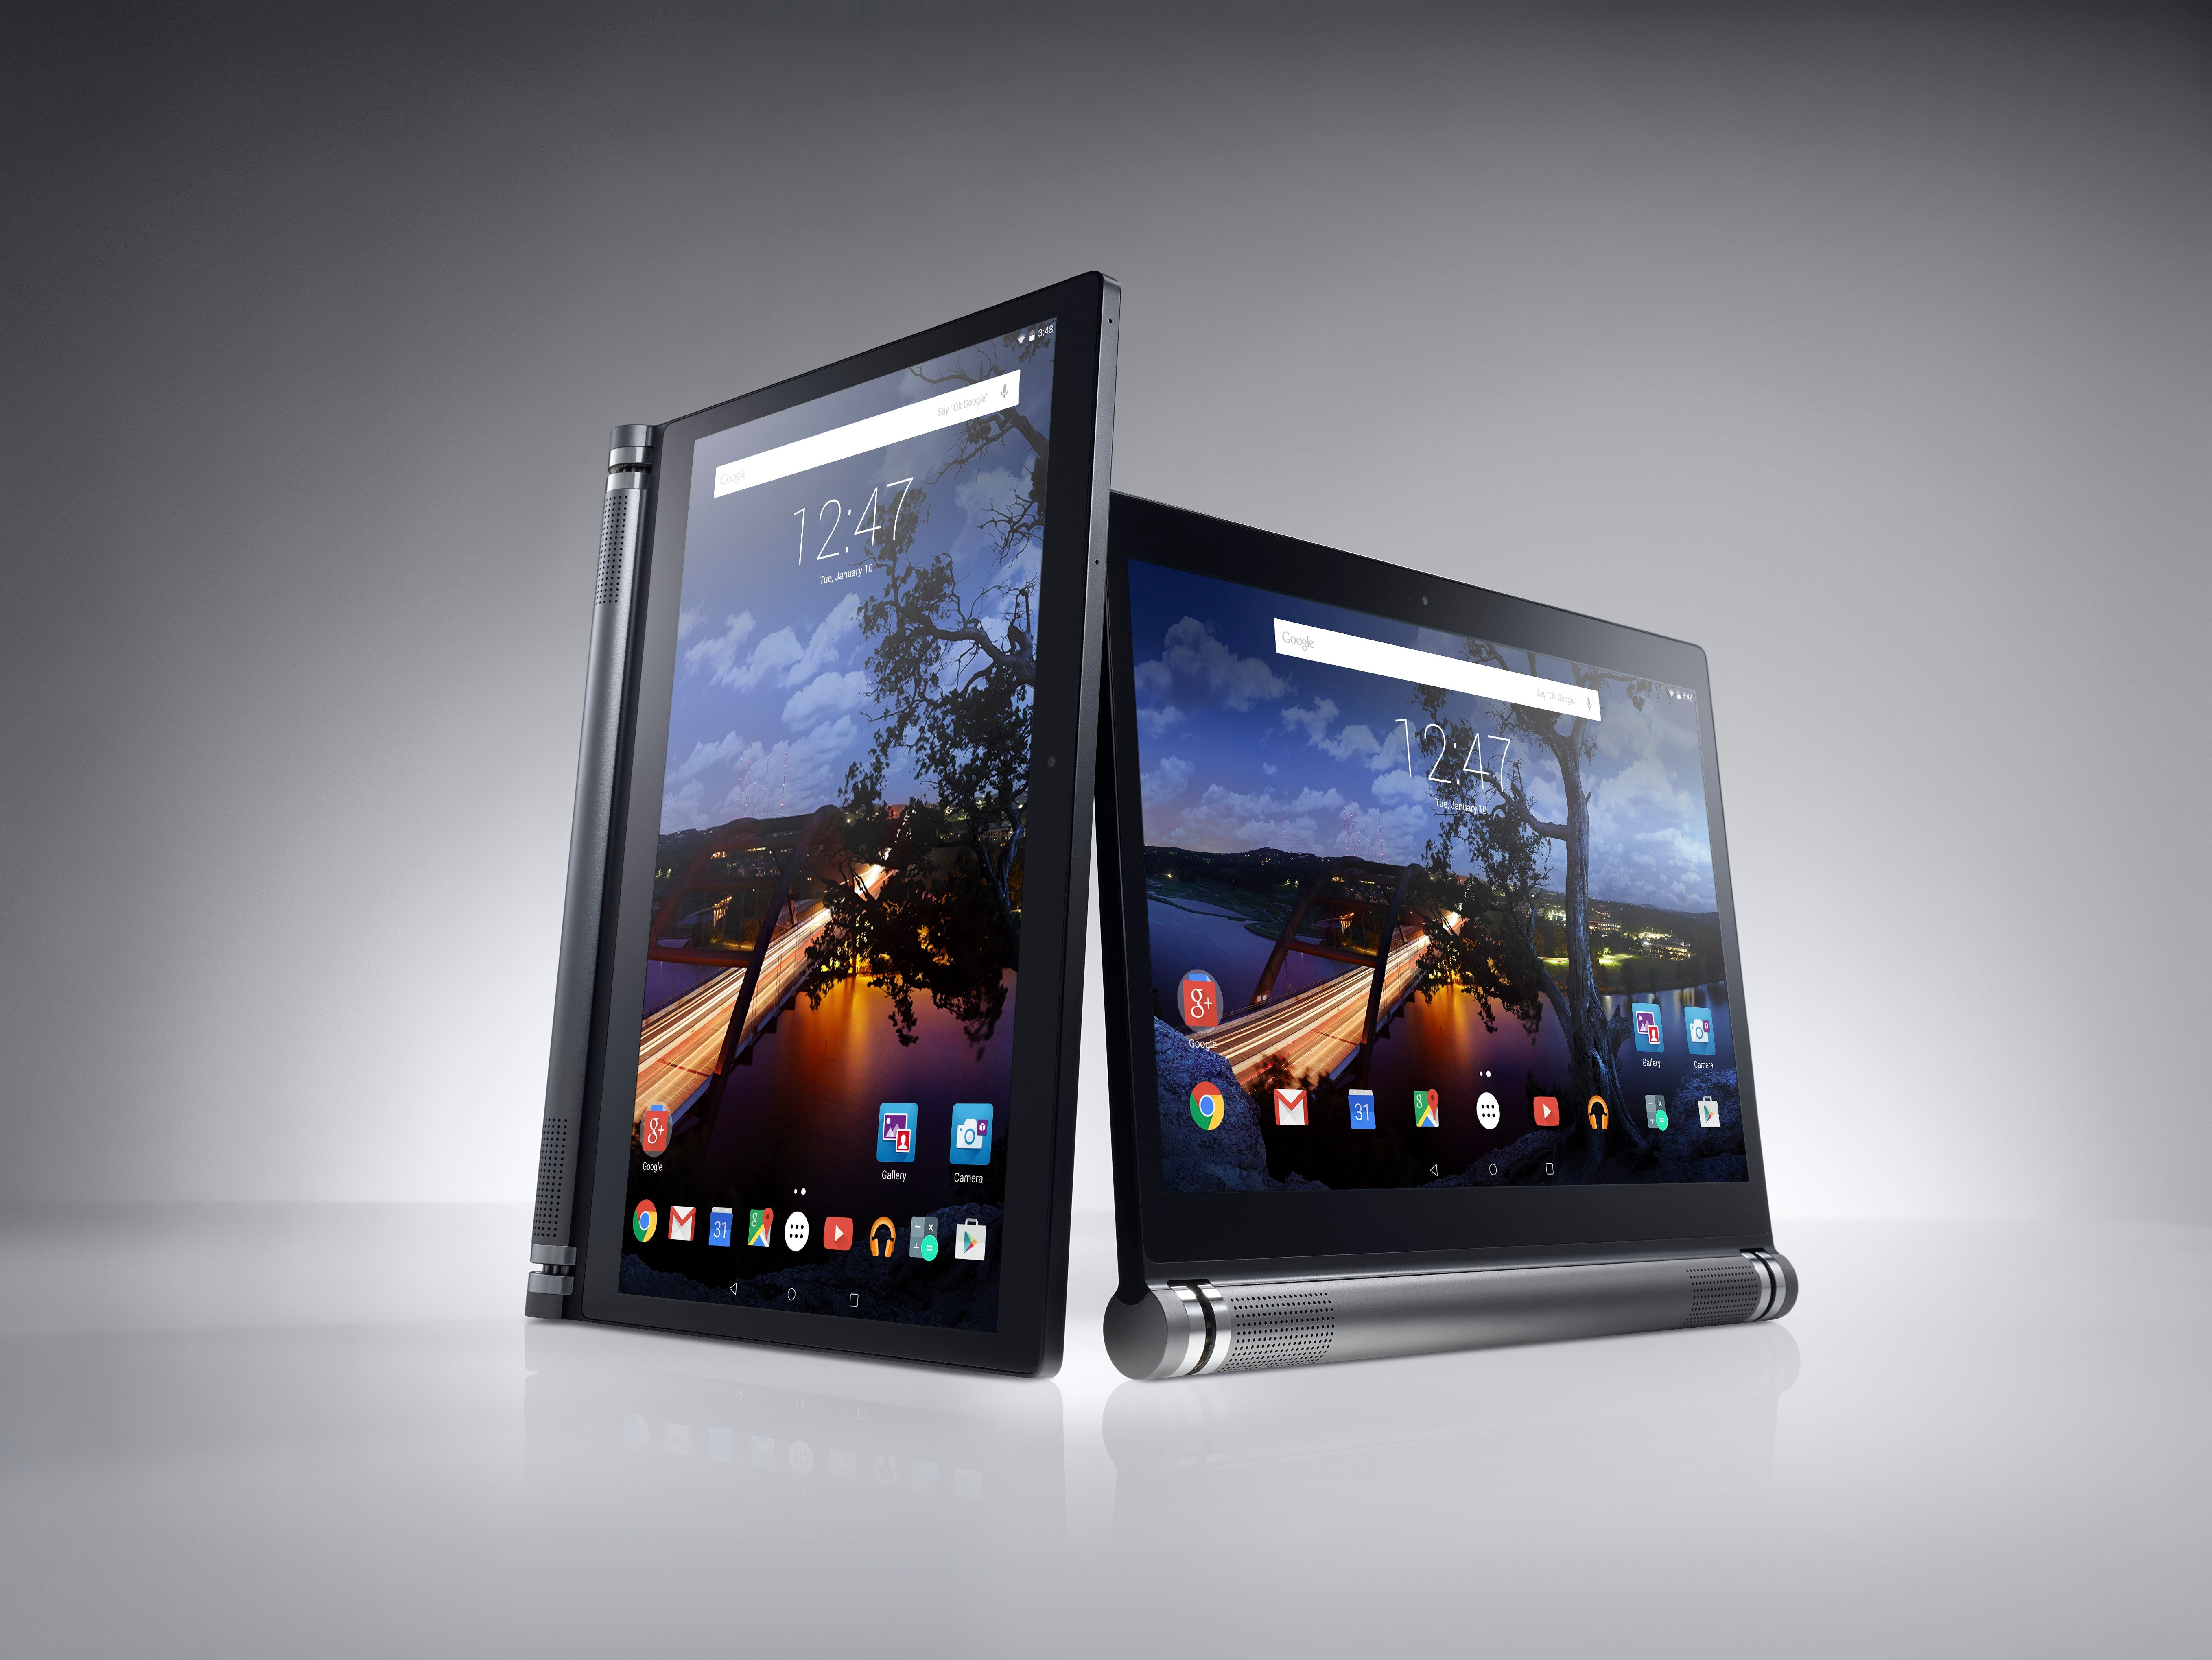 Two Dell Venue 10 7000 Series (Model 7040, codename Eagle Peak) Android tablet computers shown on a gray beauty background, one in vertical/portrait position and one in horizontal/landscape position.